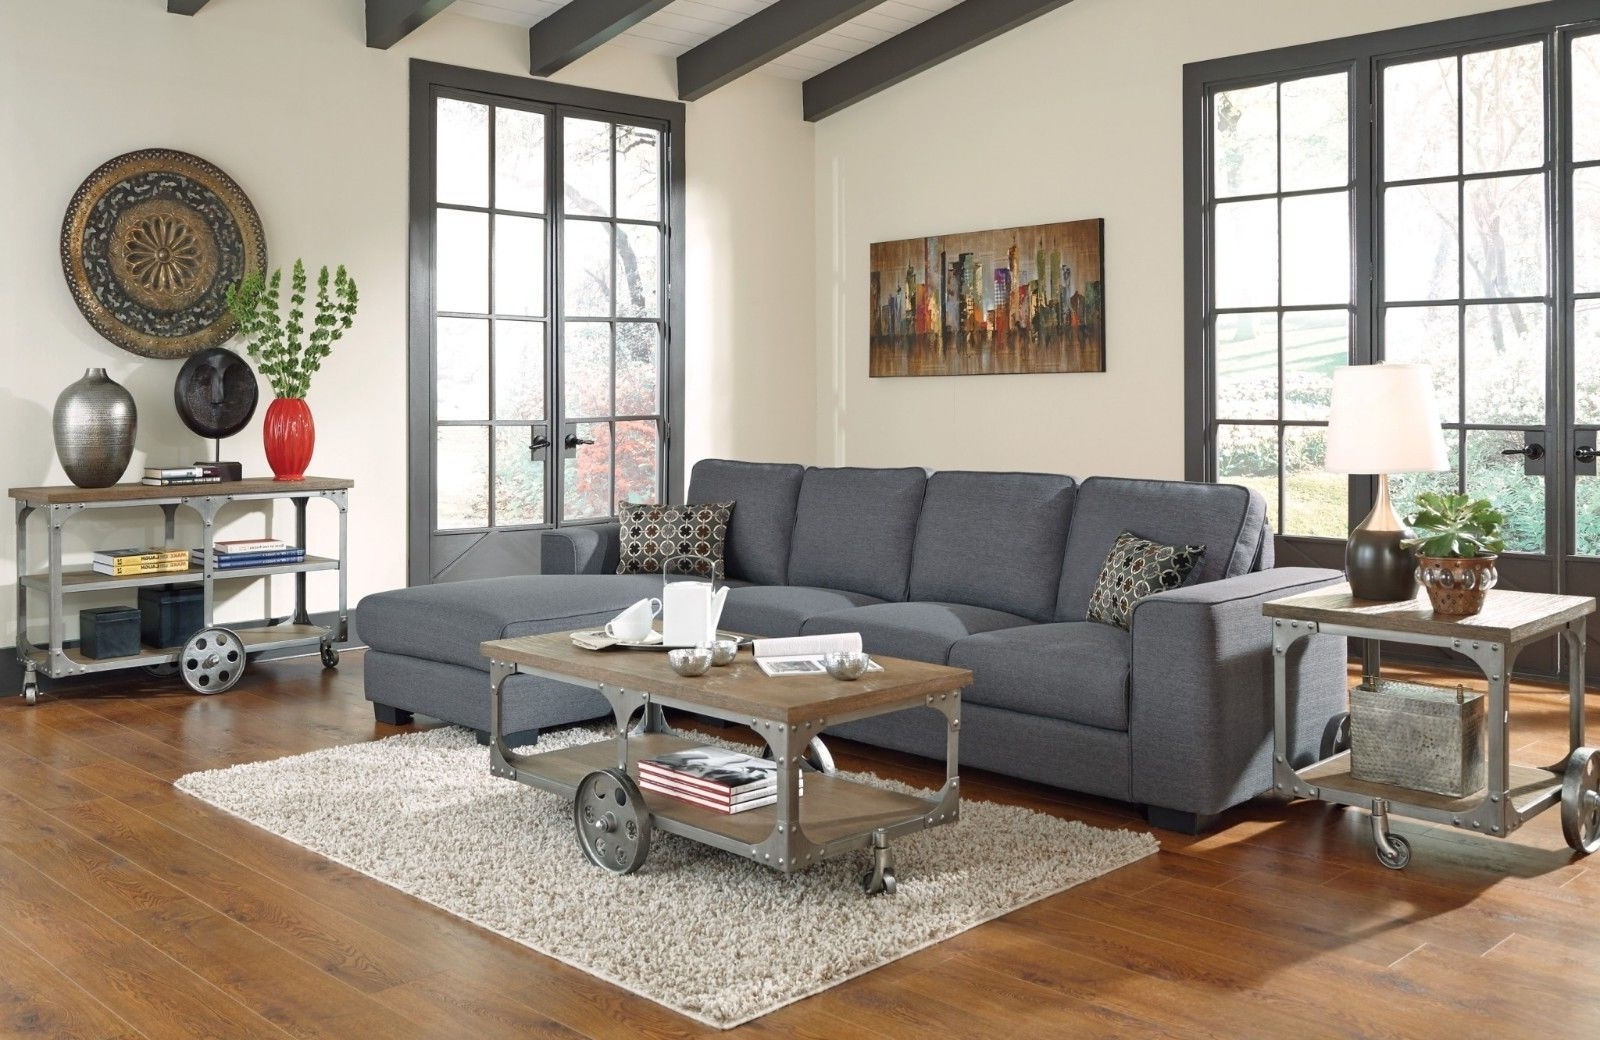 Widely Used Living Room : Brown Sofa Decor Sectional Couch Design Ideas Living Regarding Sectional Sofas Decorating (View 19 of 20)